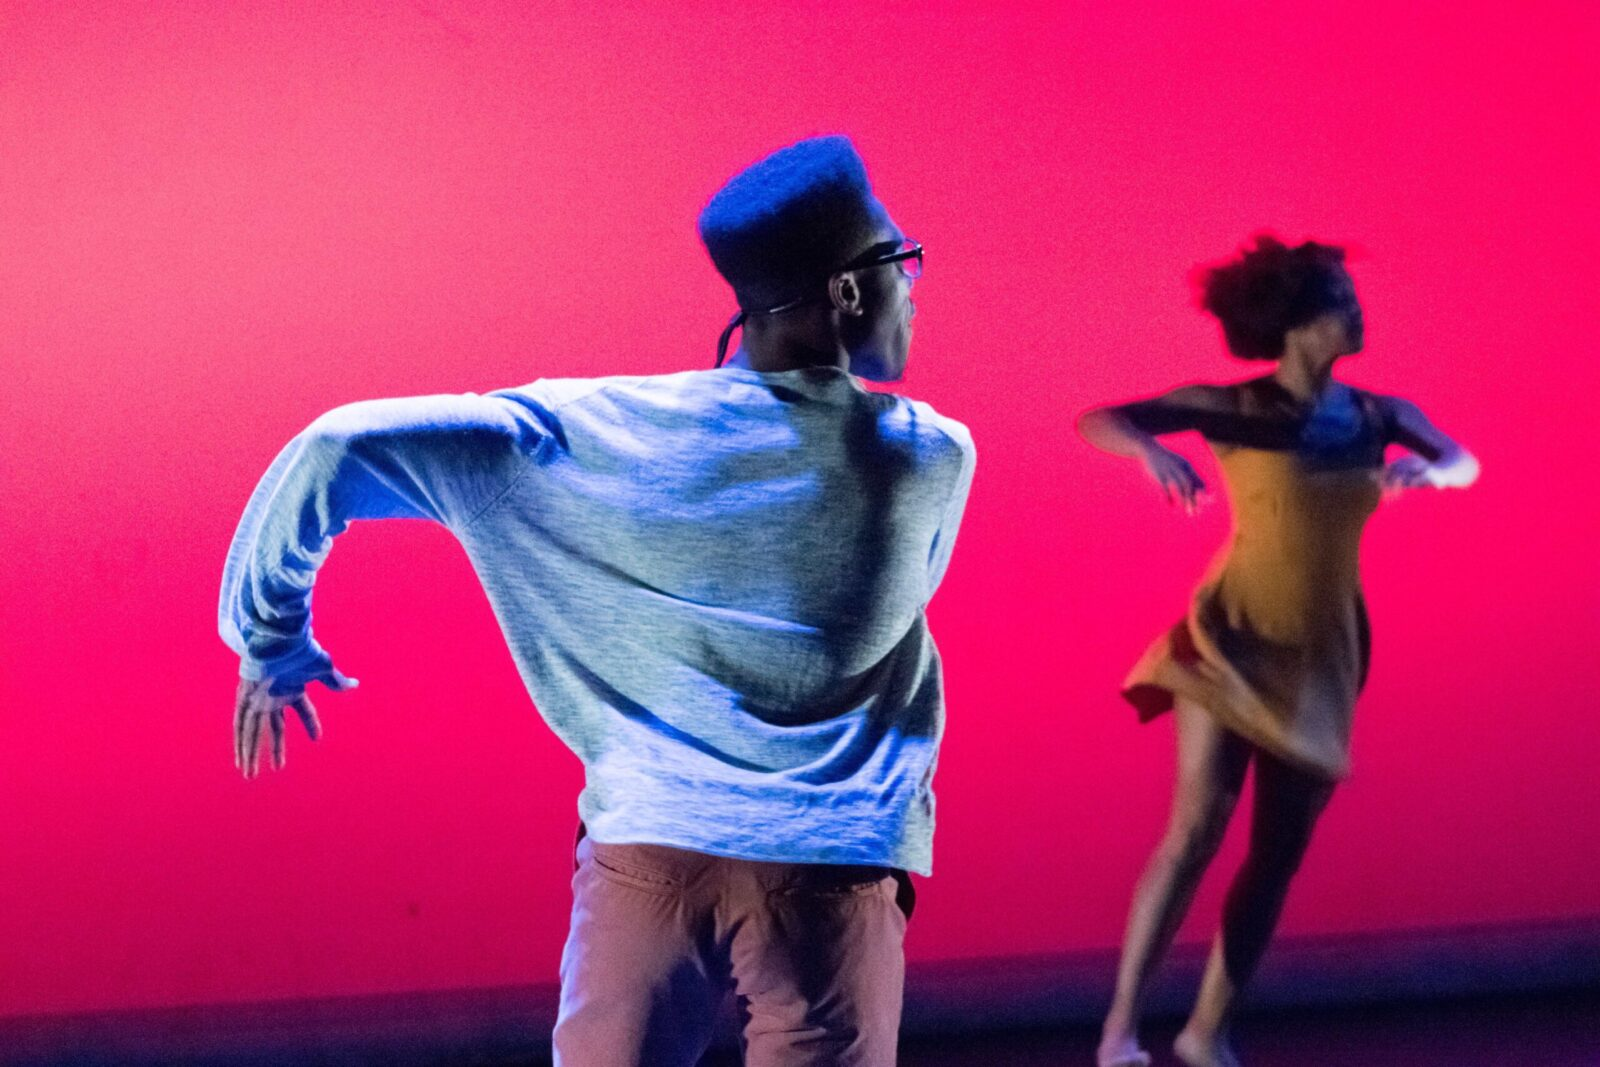 A back of a dancer with left arm outstretched in front of a red screen